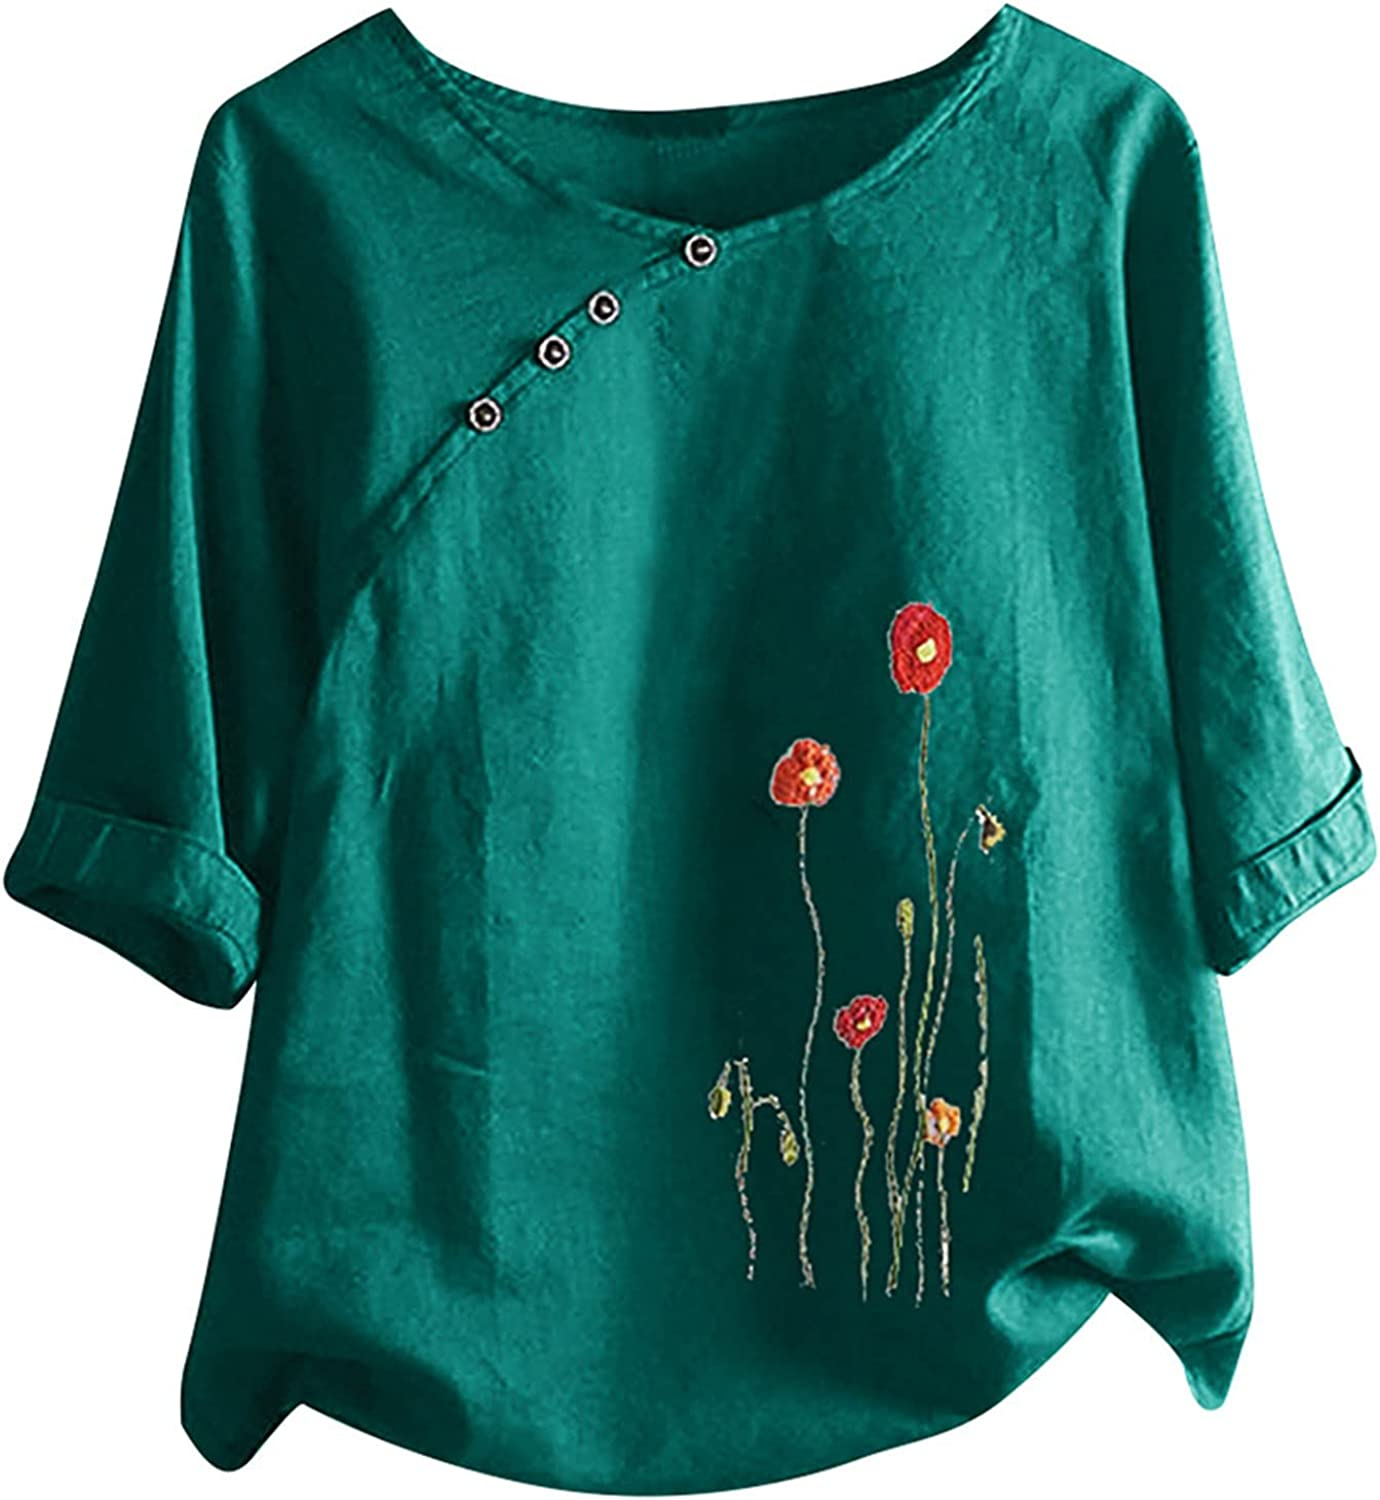 Tops for Women Casual Summer,TOWMUS Women Plain Plue Size Half Sleeve Round Neck Floral Tee T Shirts Button Tunic Shirts